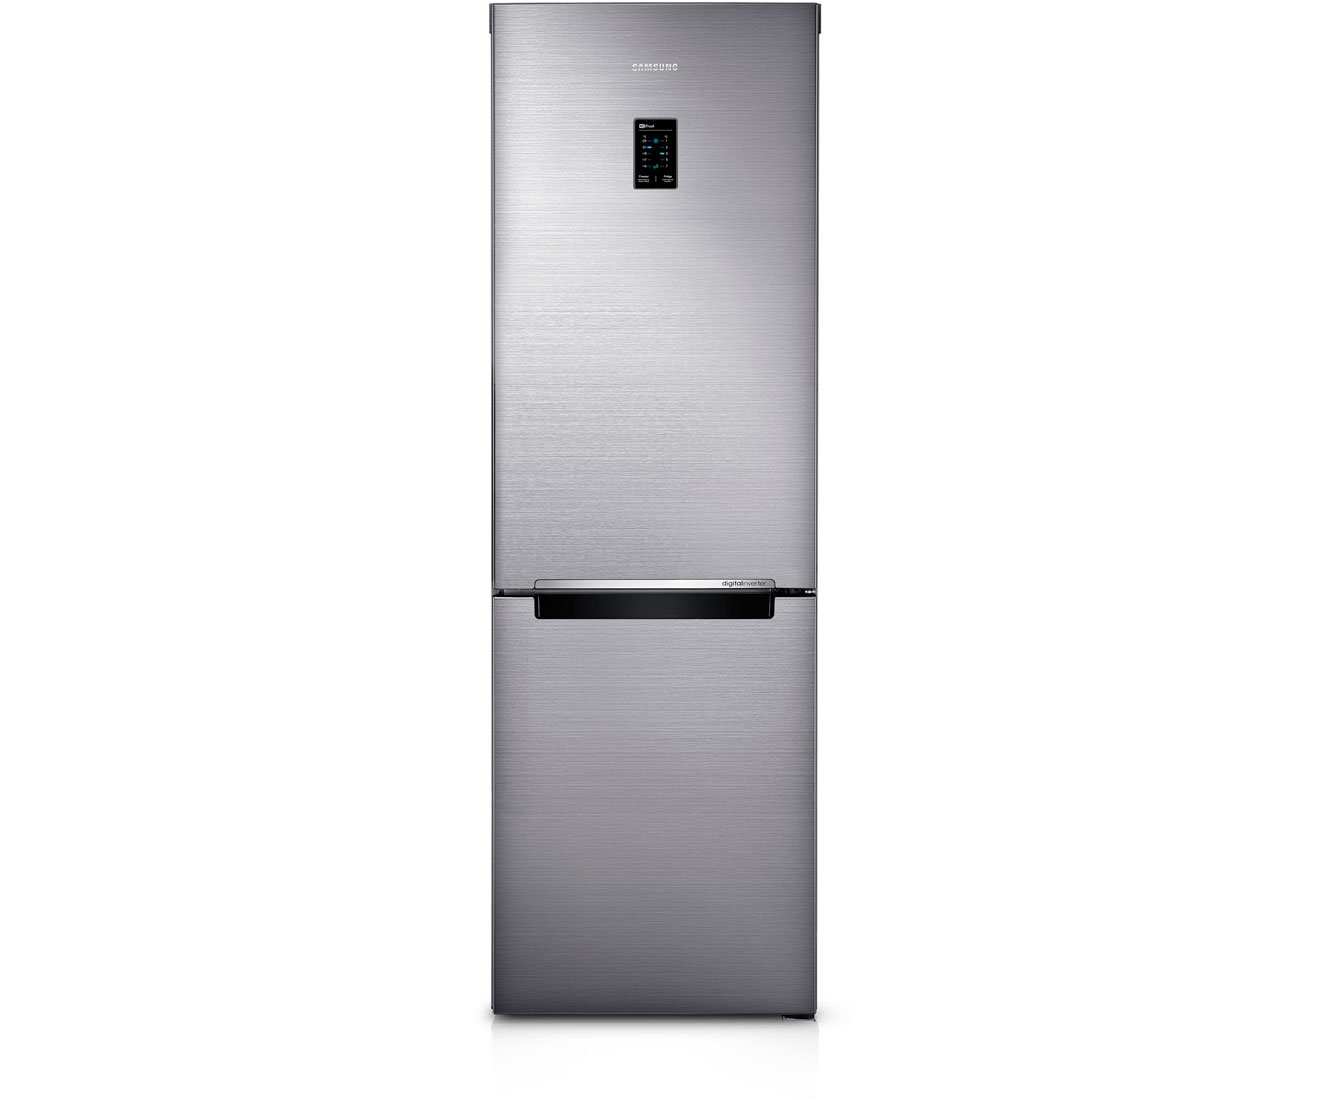 Samsung RB Combi Range RB31FERNDSS Free Standing Fridge Freezer Frost Free in Stainless Steel Look